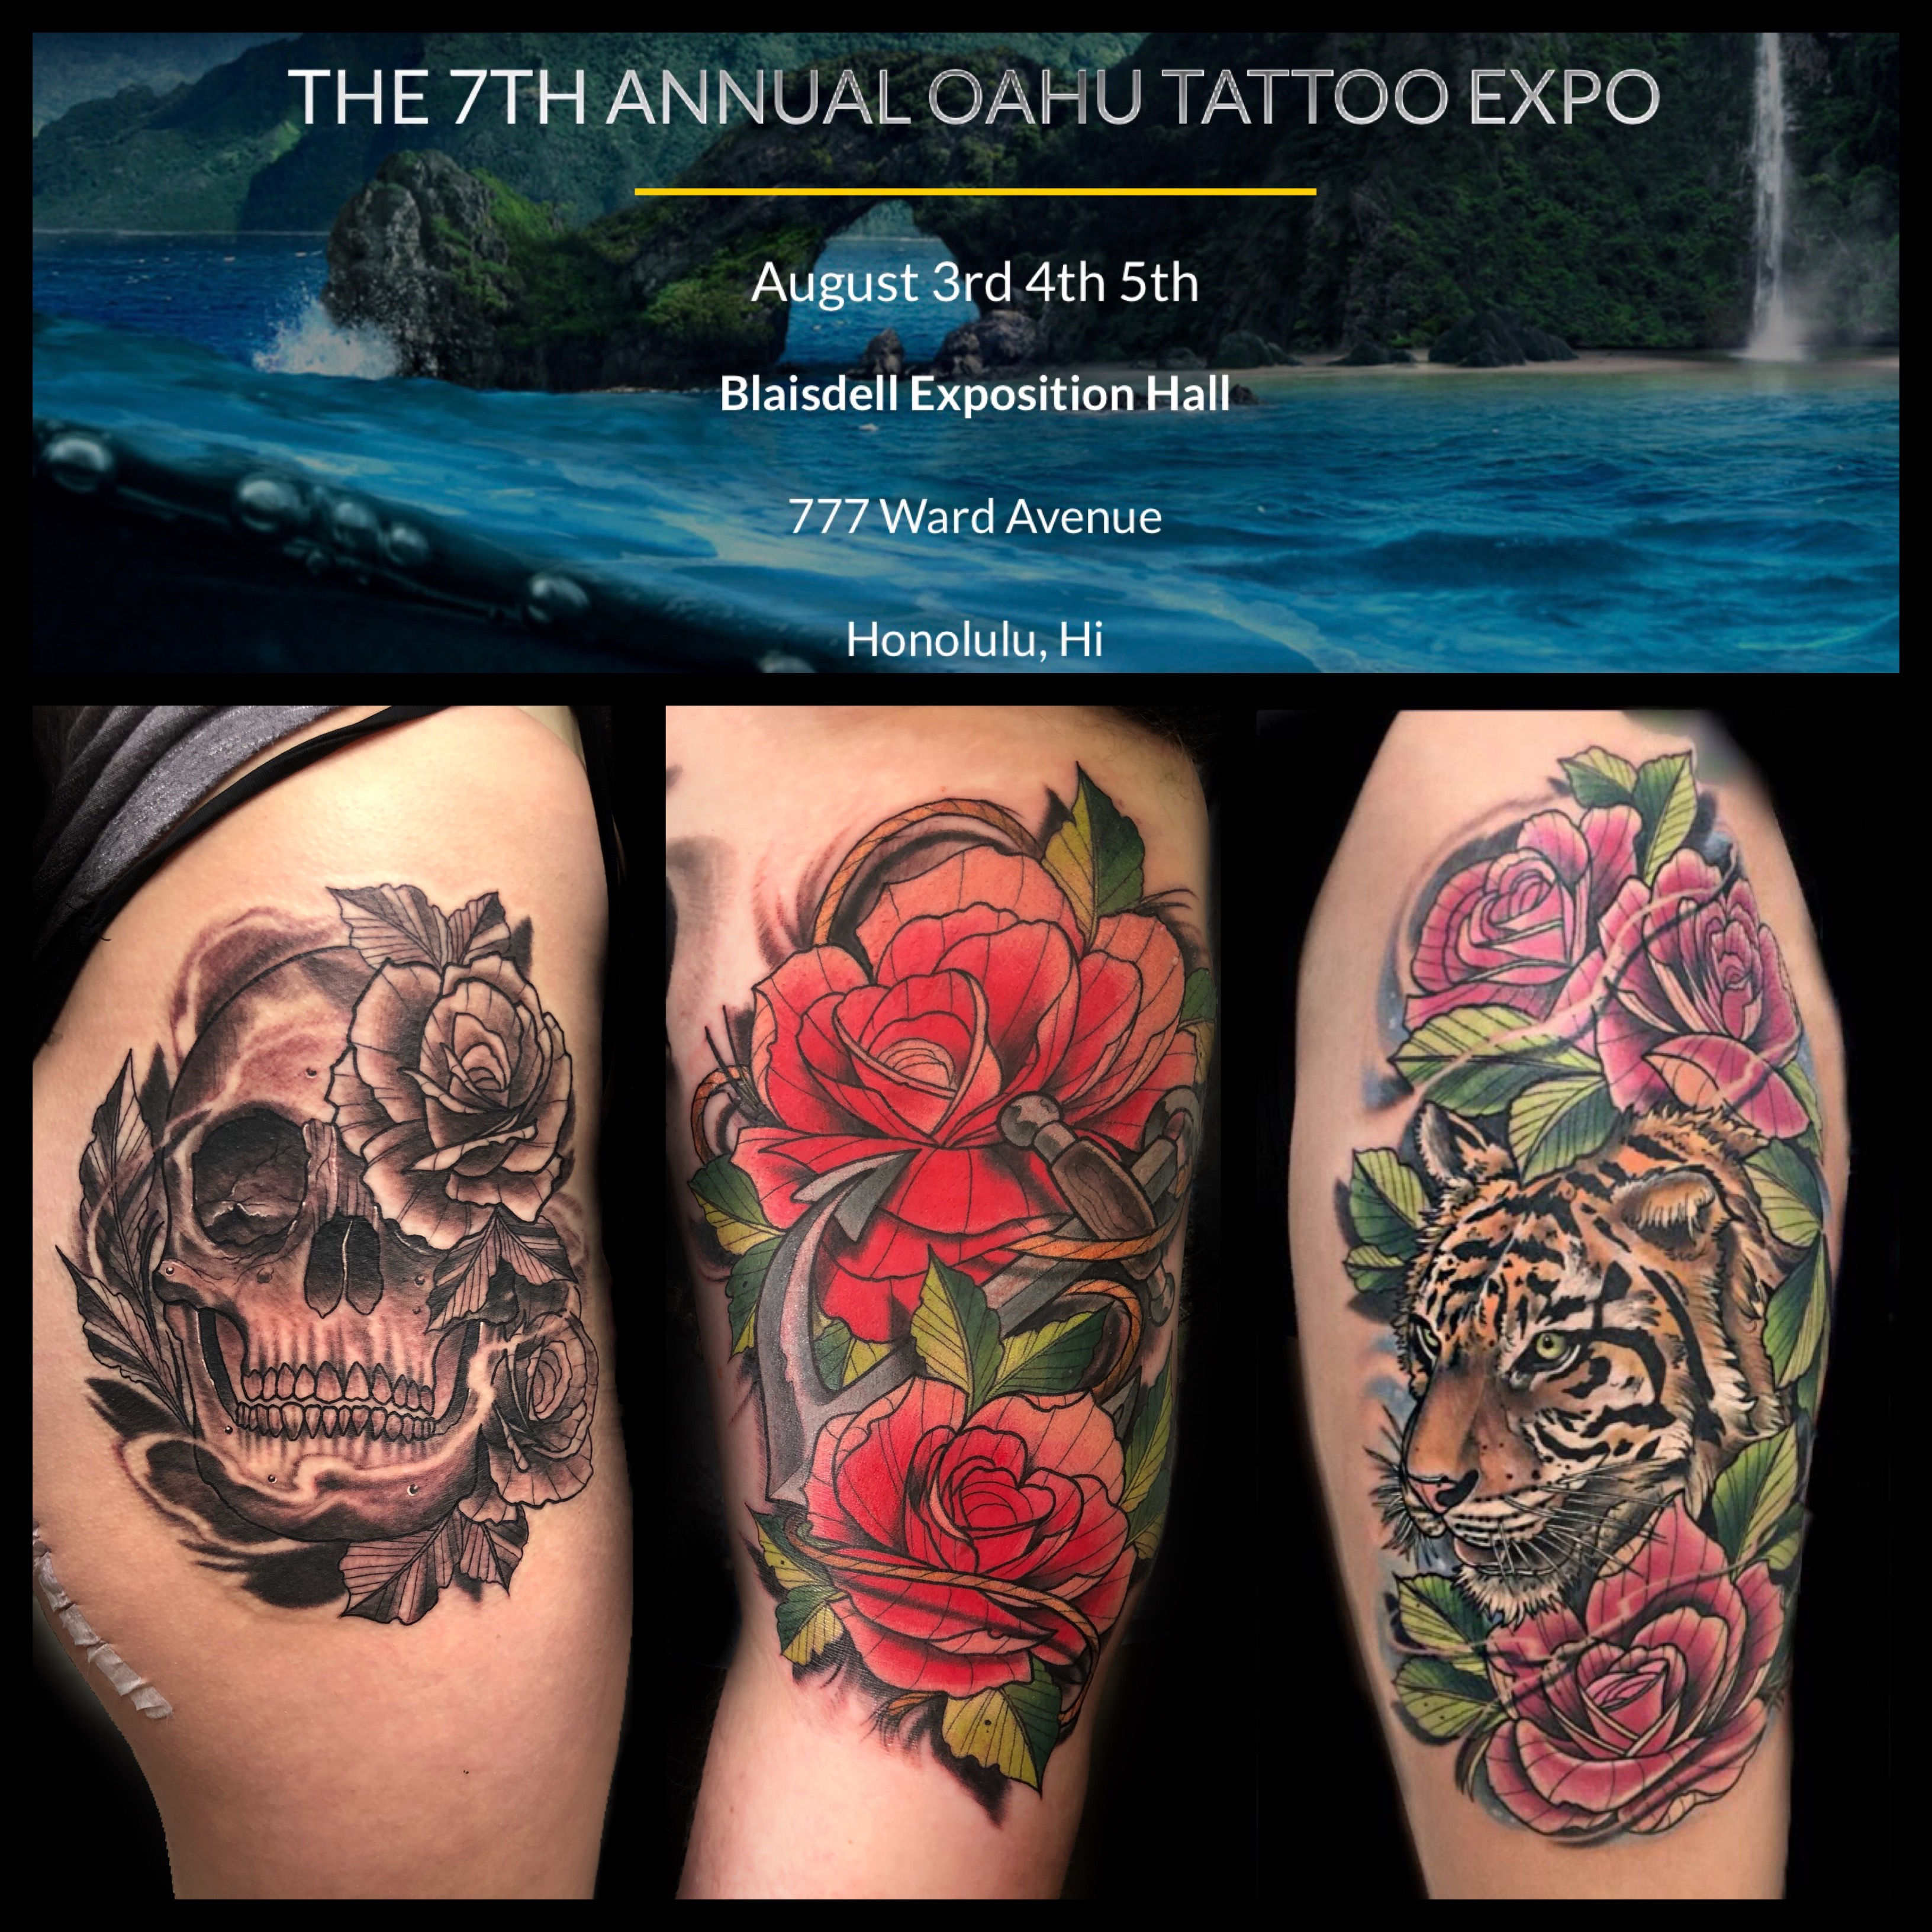 The 7th Annual Oahu Tattoo Expo